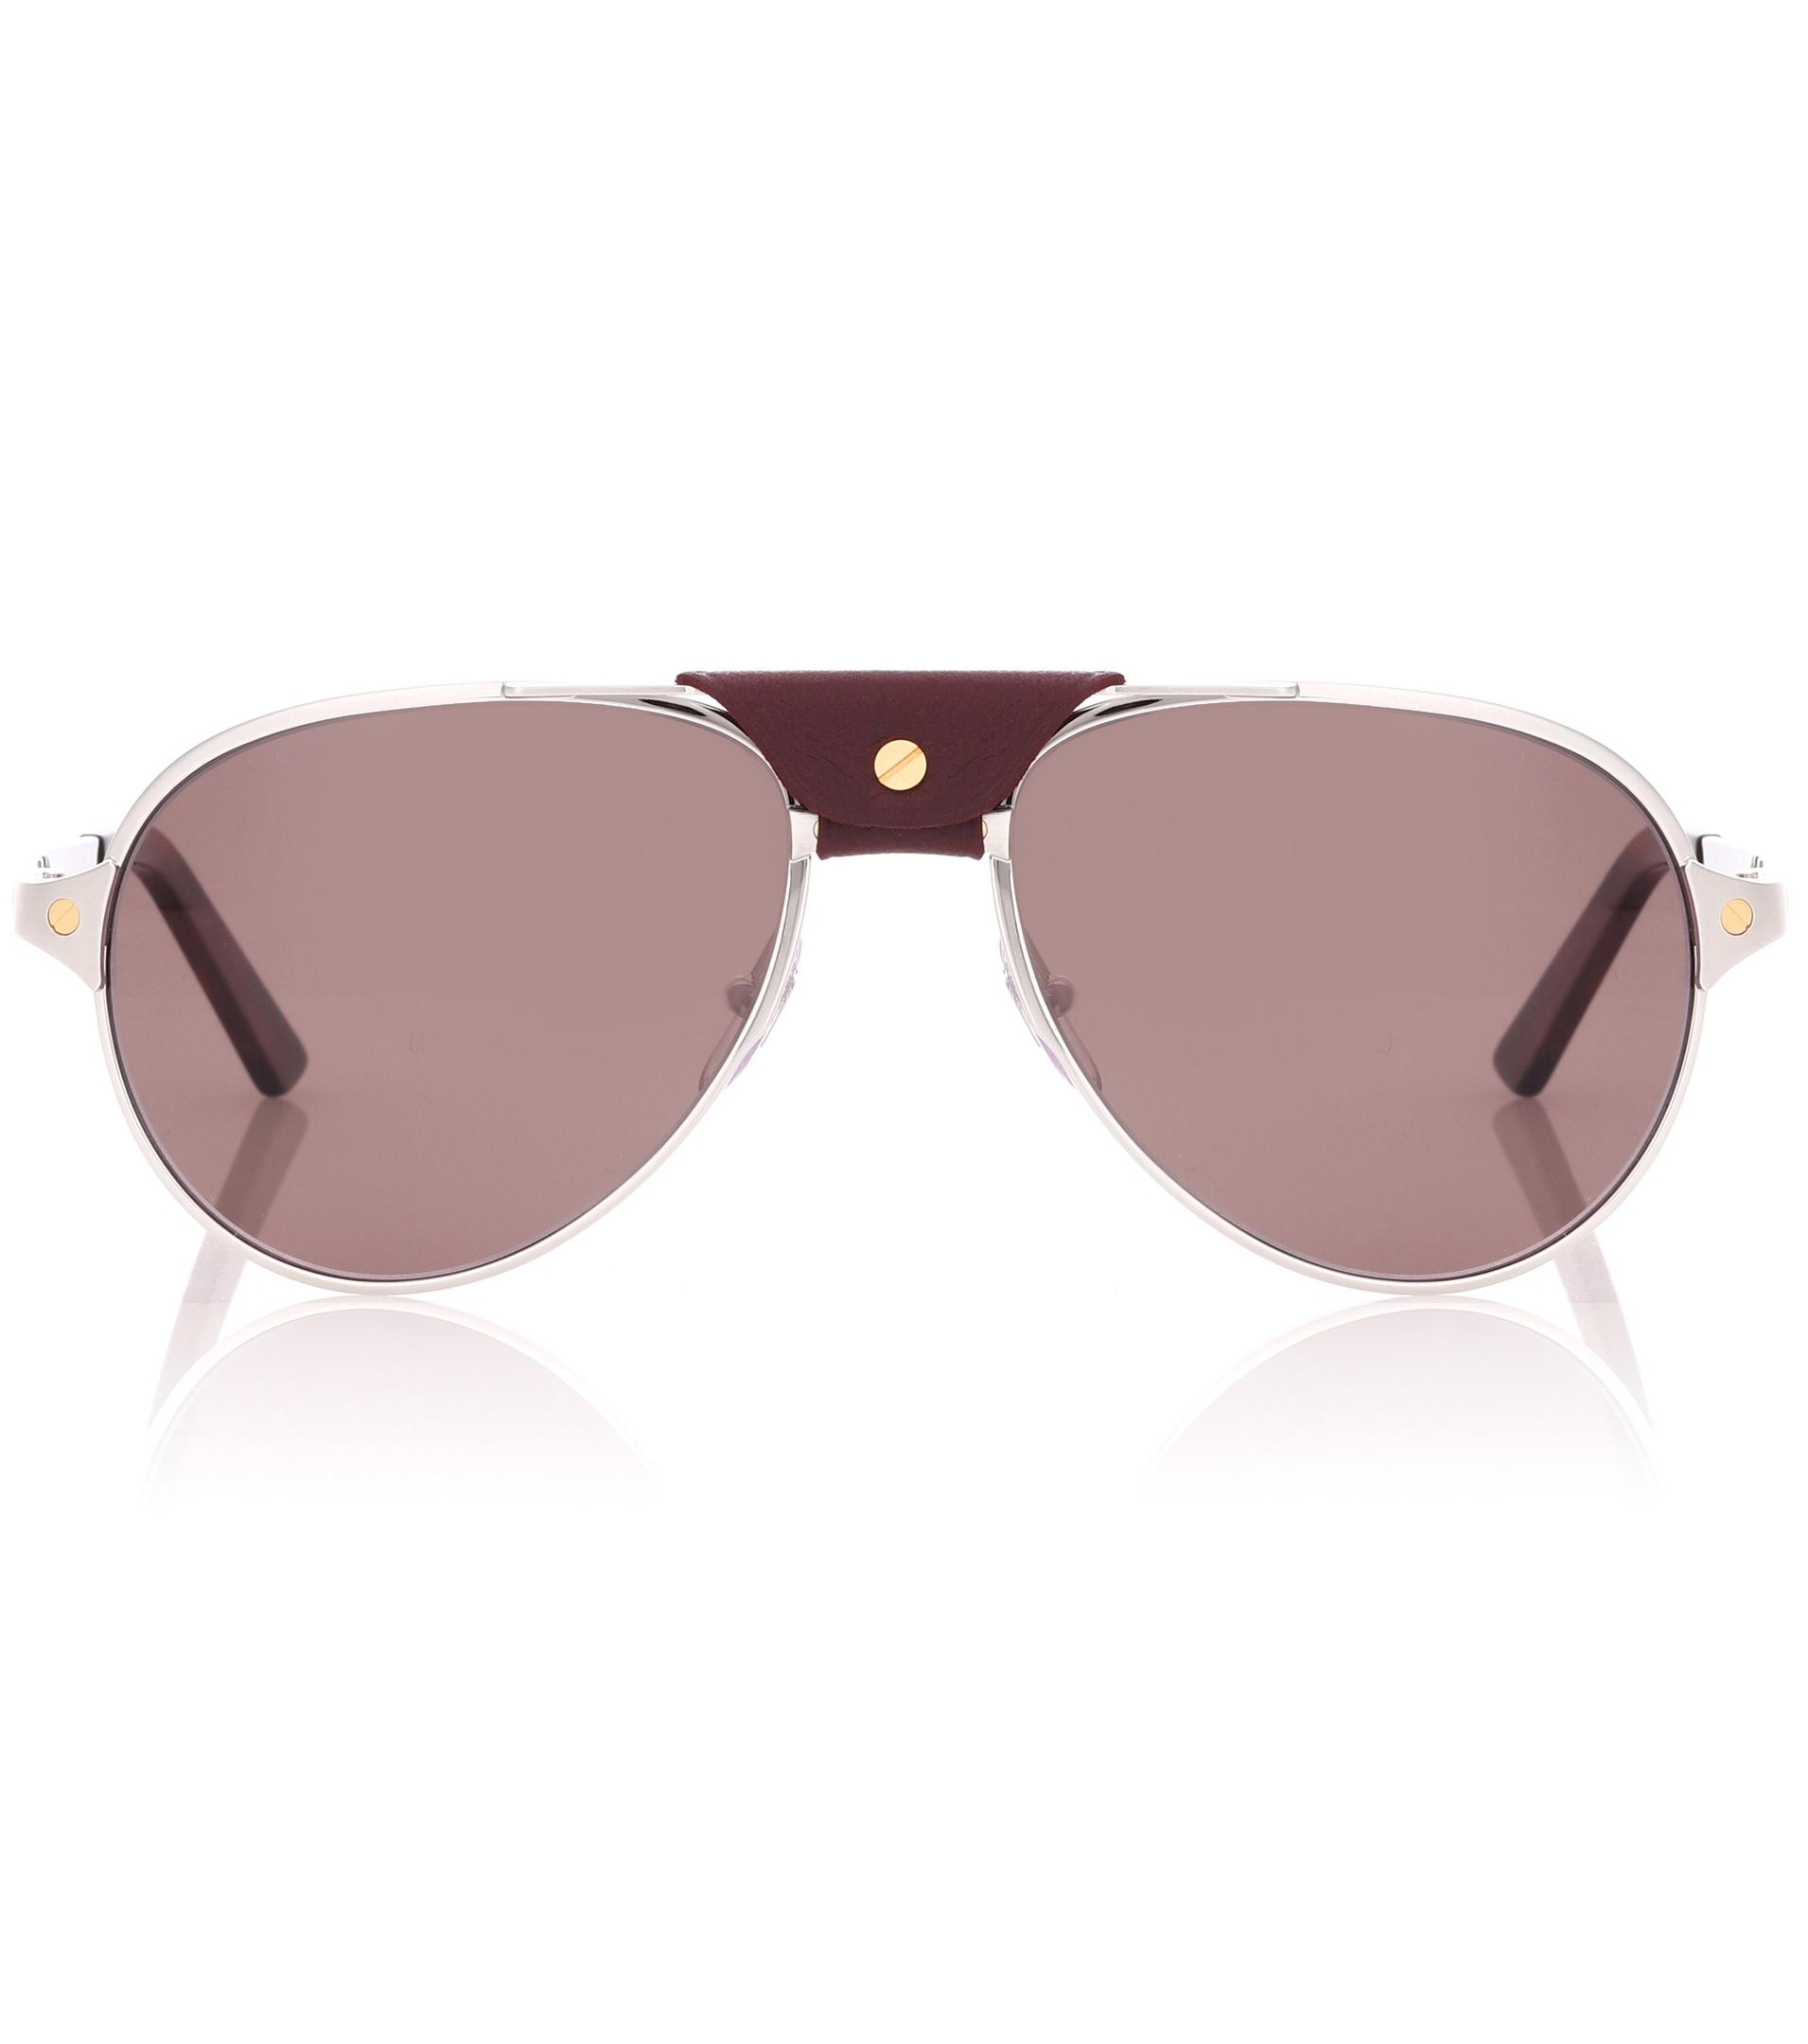 dc68699ad34b Cartier Santos Aviator Sunglasses - Restaurant and Palinka Bar